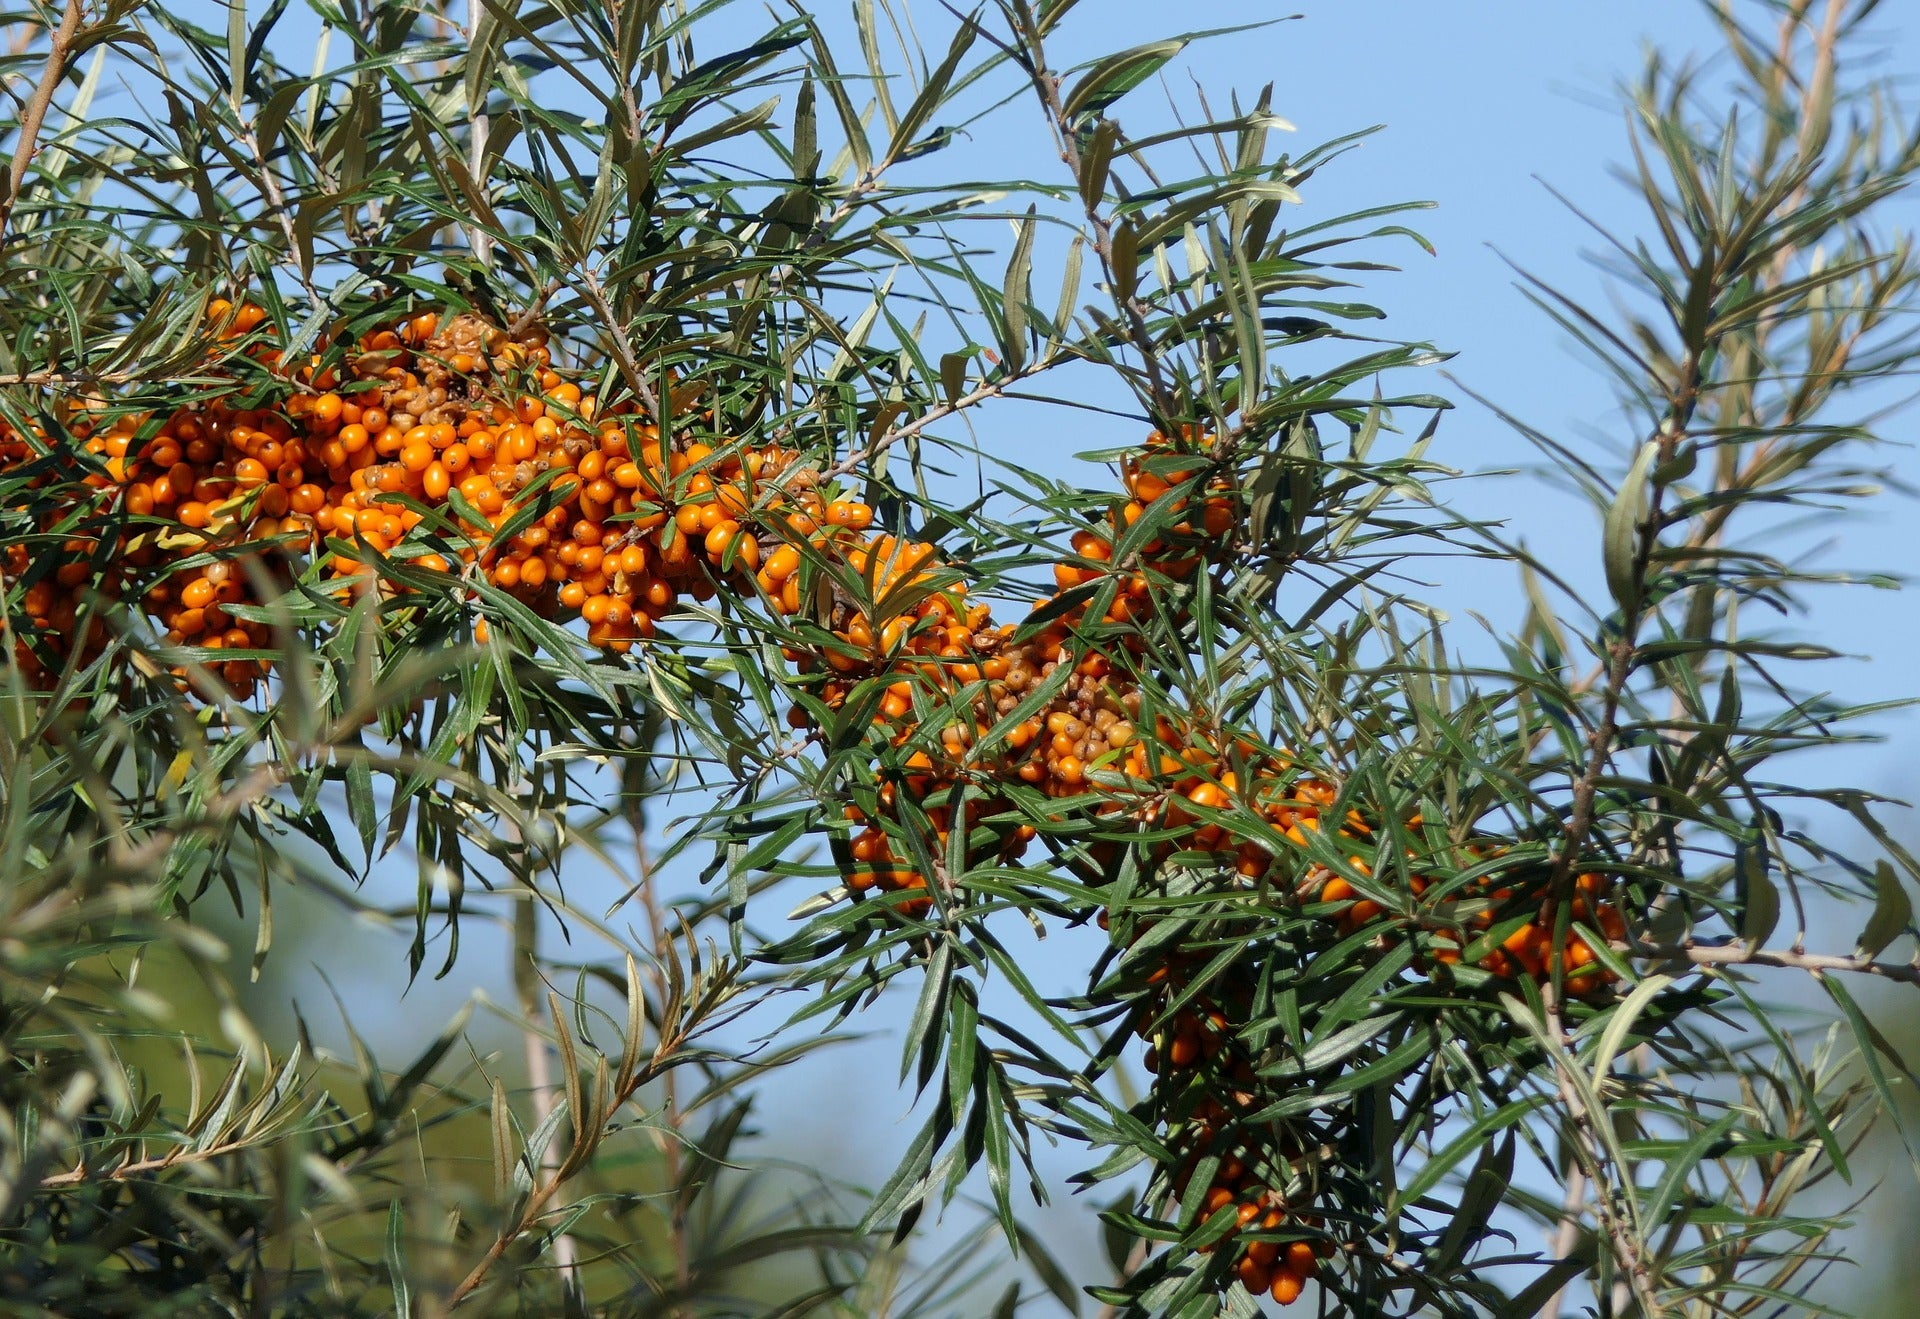 sea-buckthorn-3701961_1920.jpg